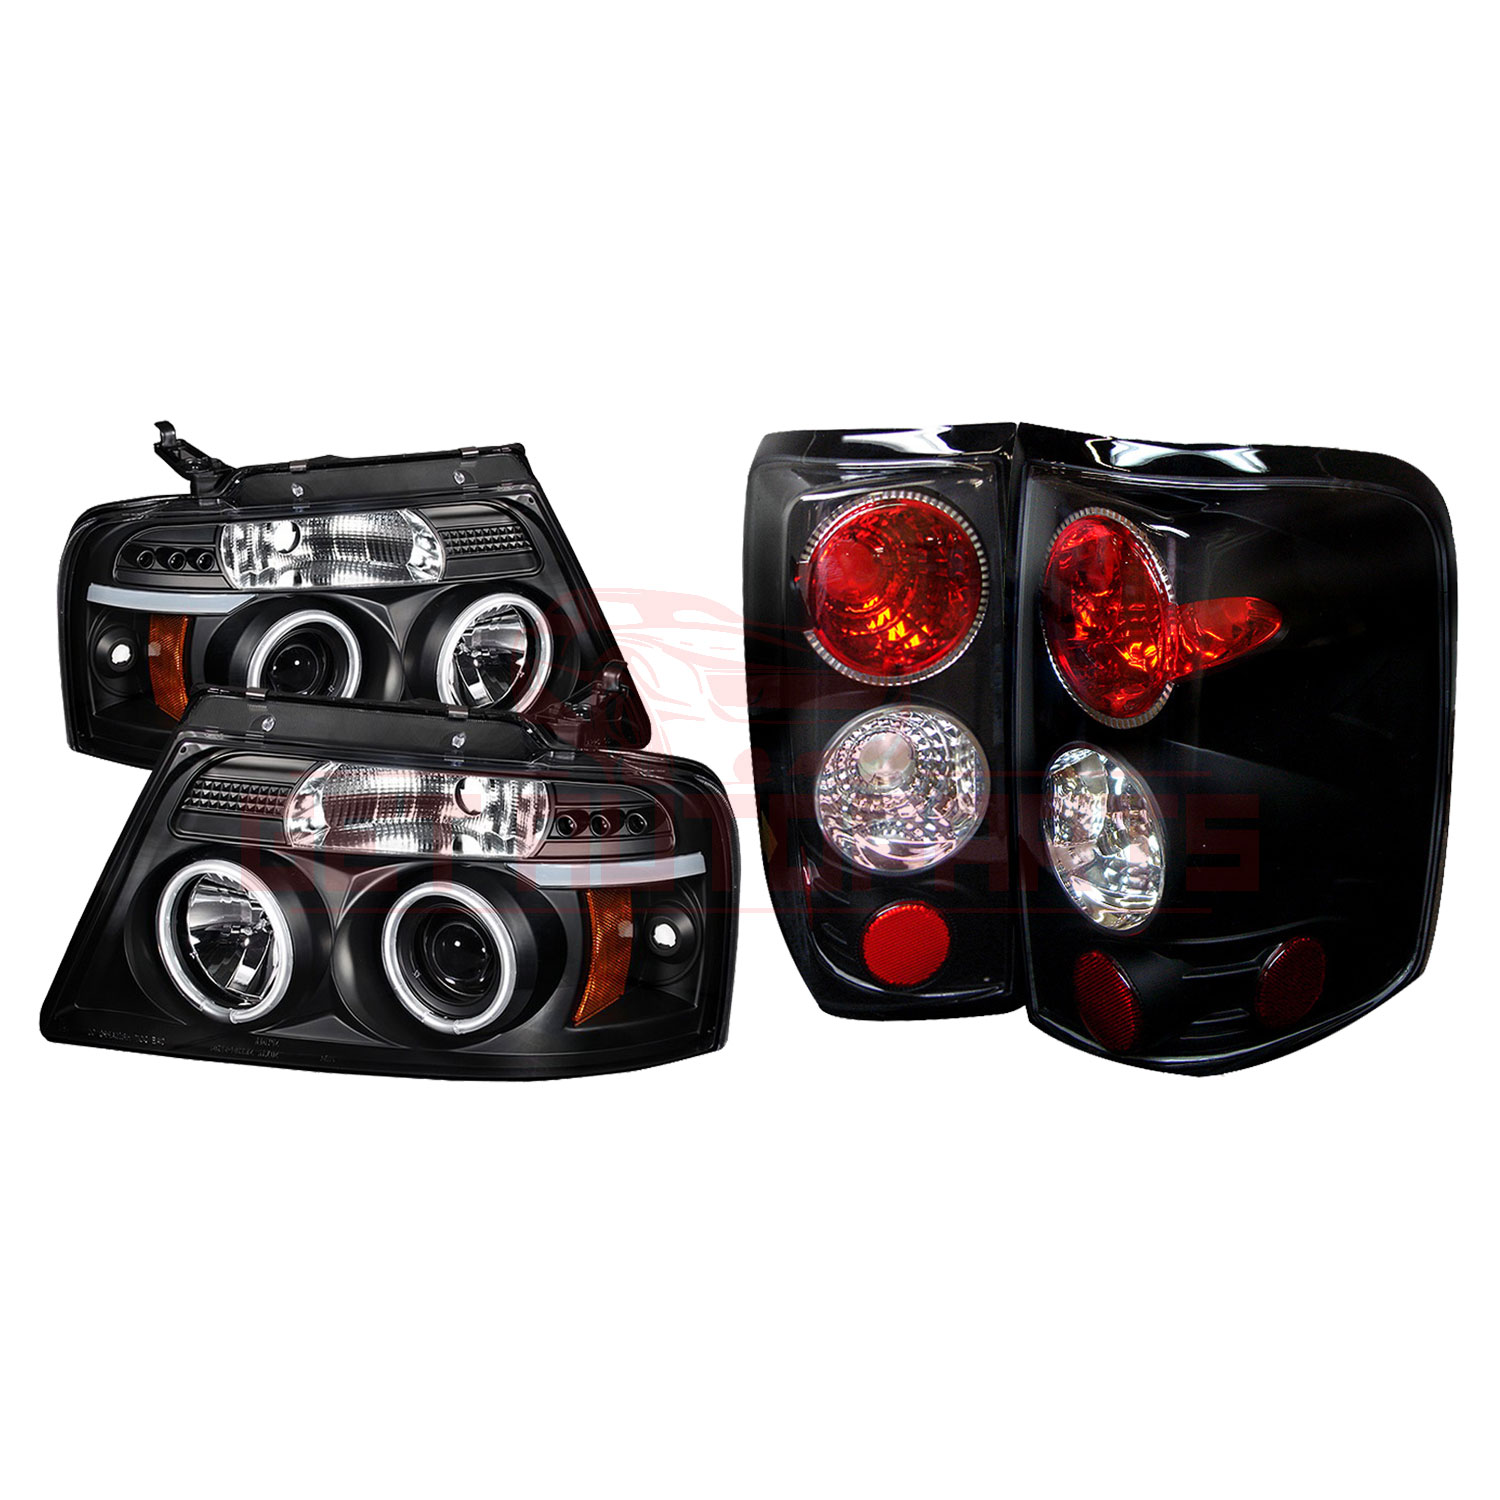 Spyder LED Projector Headlights & Tail Lights Blk for Ford F150 Styleside 04-08 part in Headlight & Tail Light Covers category